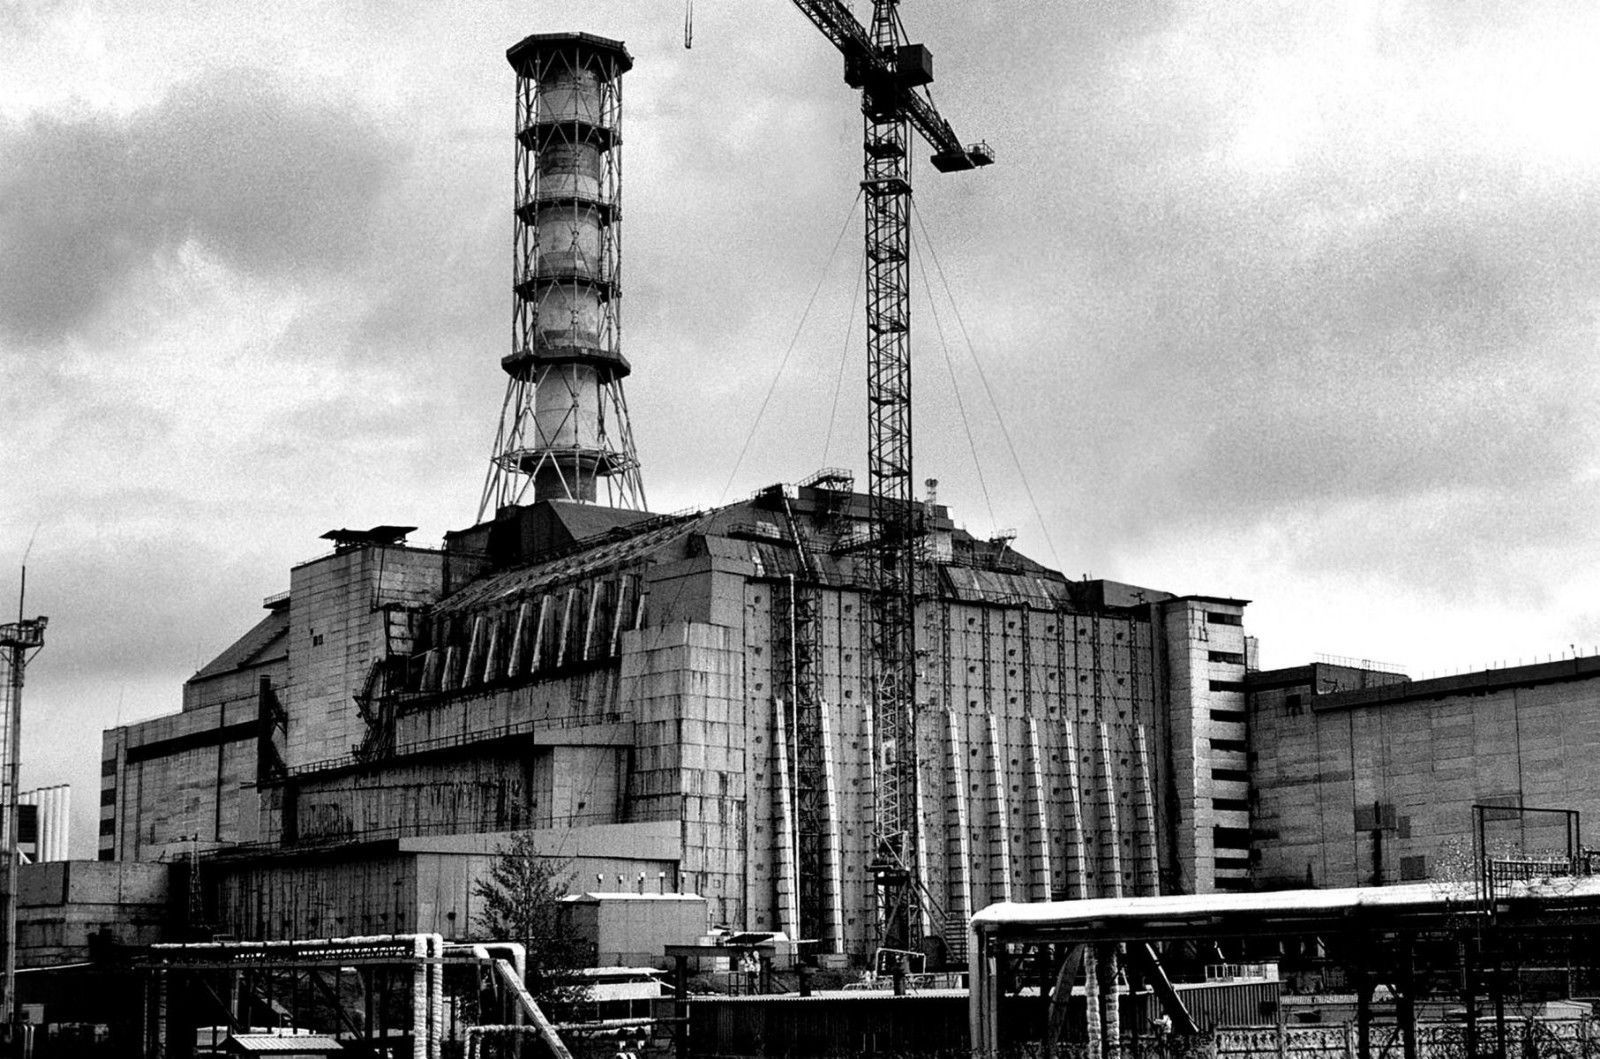 Chernobyl Industrial Nuclear Power Plant With Images Chernobyl